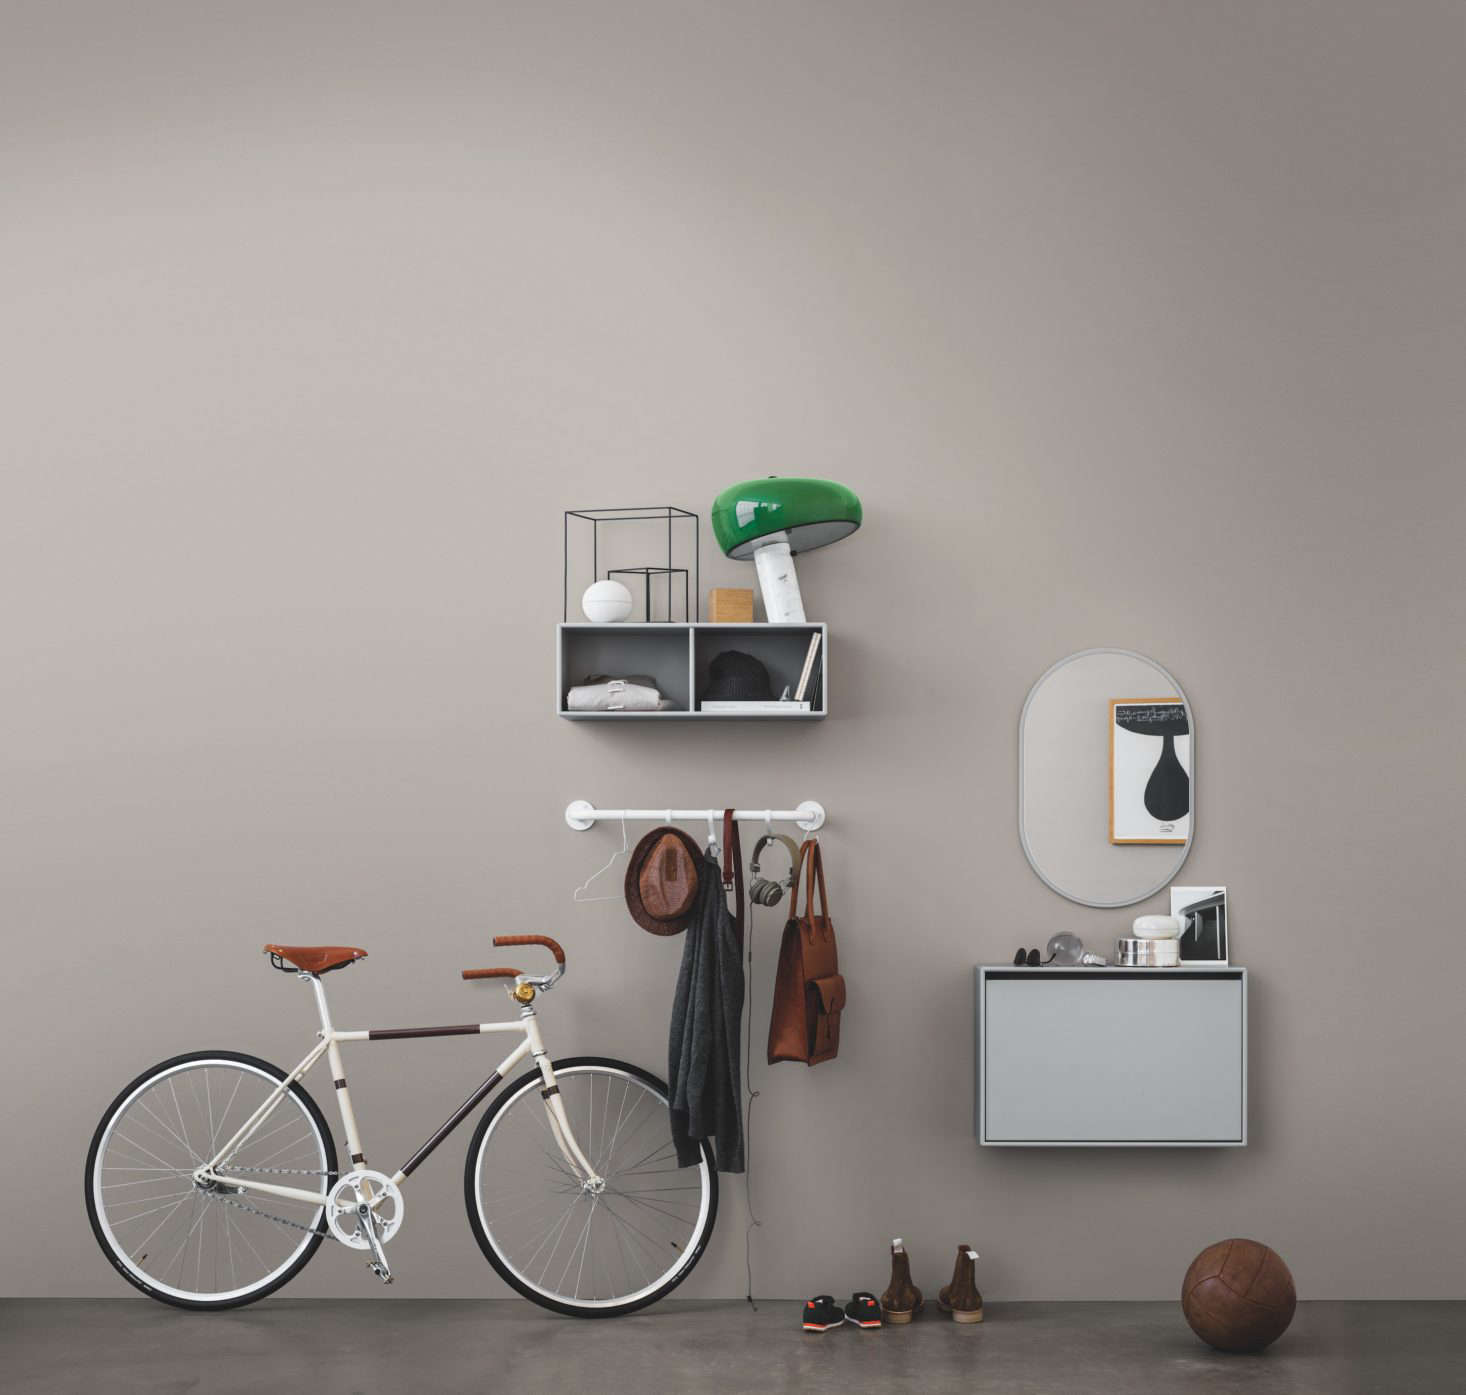 Montanau0027s Hall Edition includes ided cubes a wall-mounted hanging rail a shoe & Modular household storage systems from Montana of Denmark